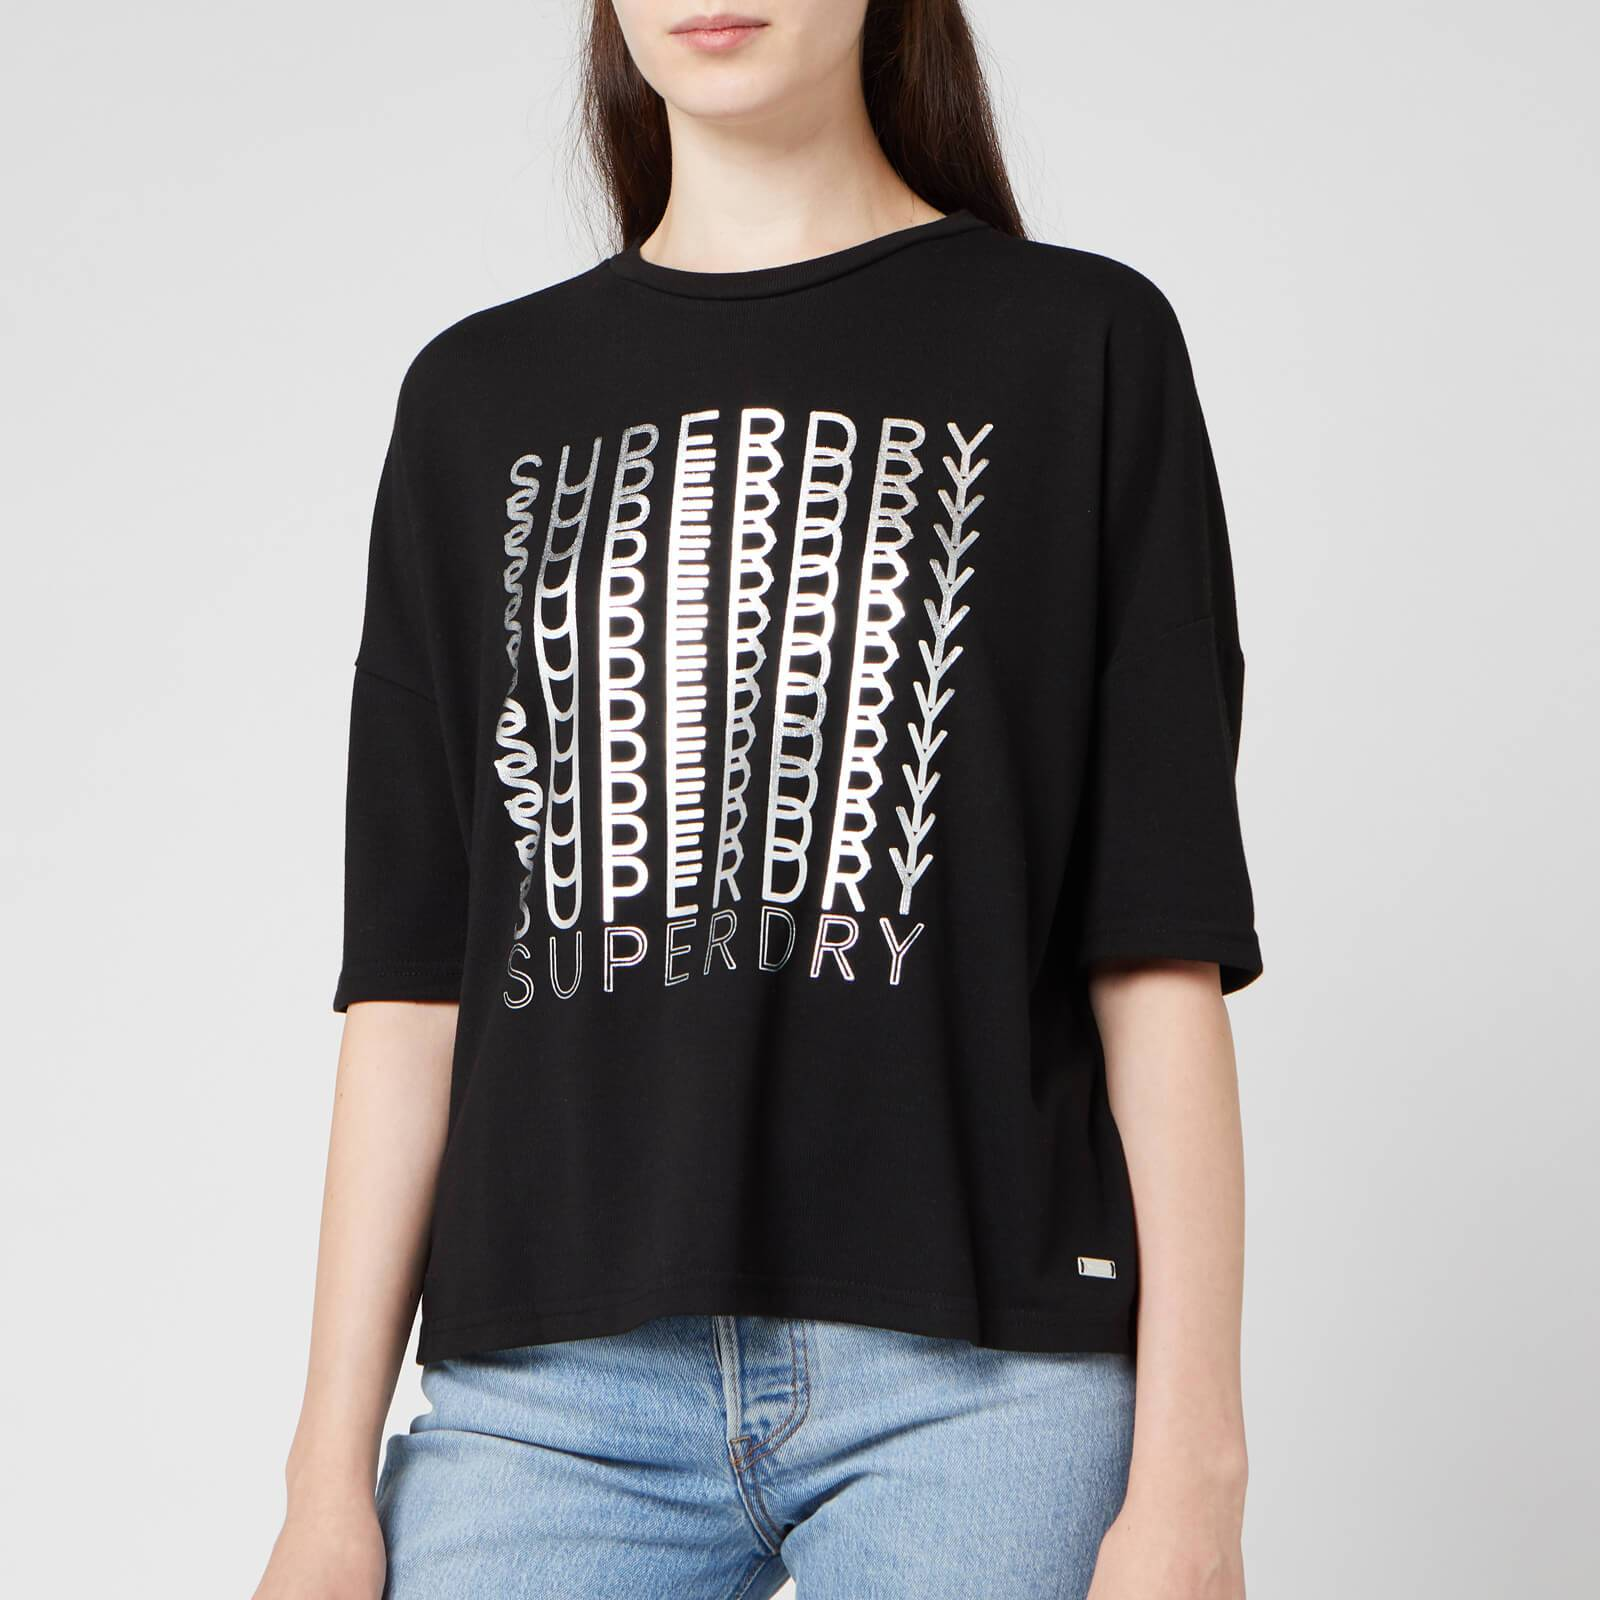 Superdry Women's Foil Graphic T-Shirt - Black - UK 14